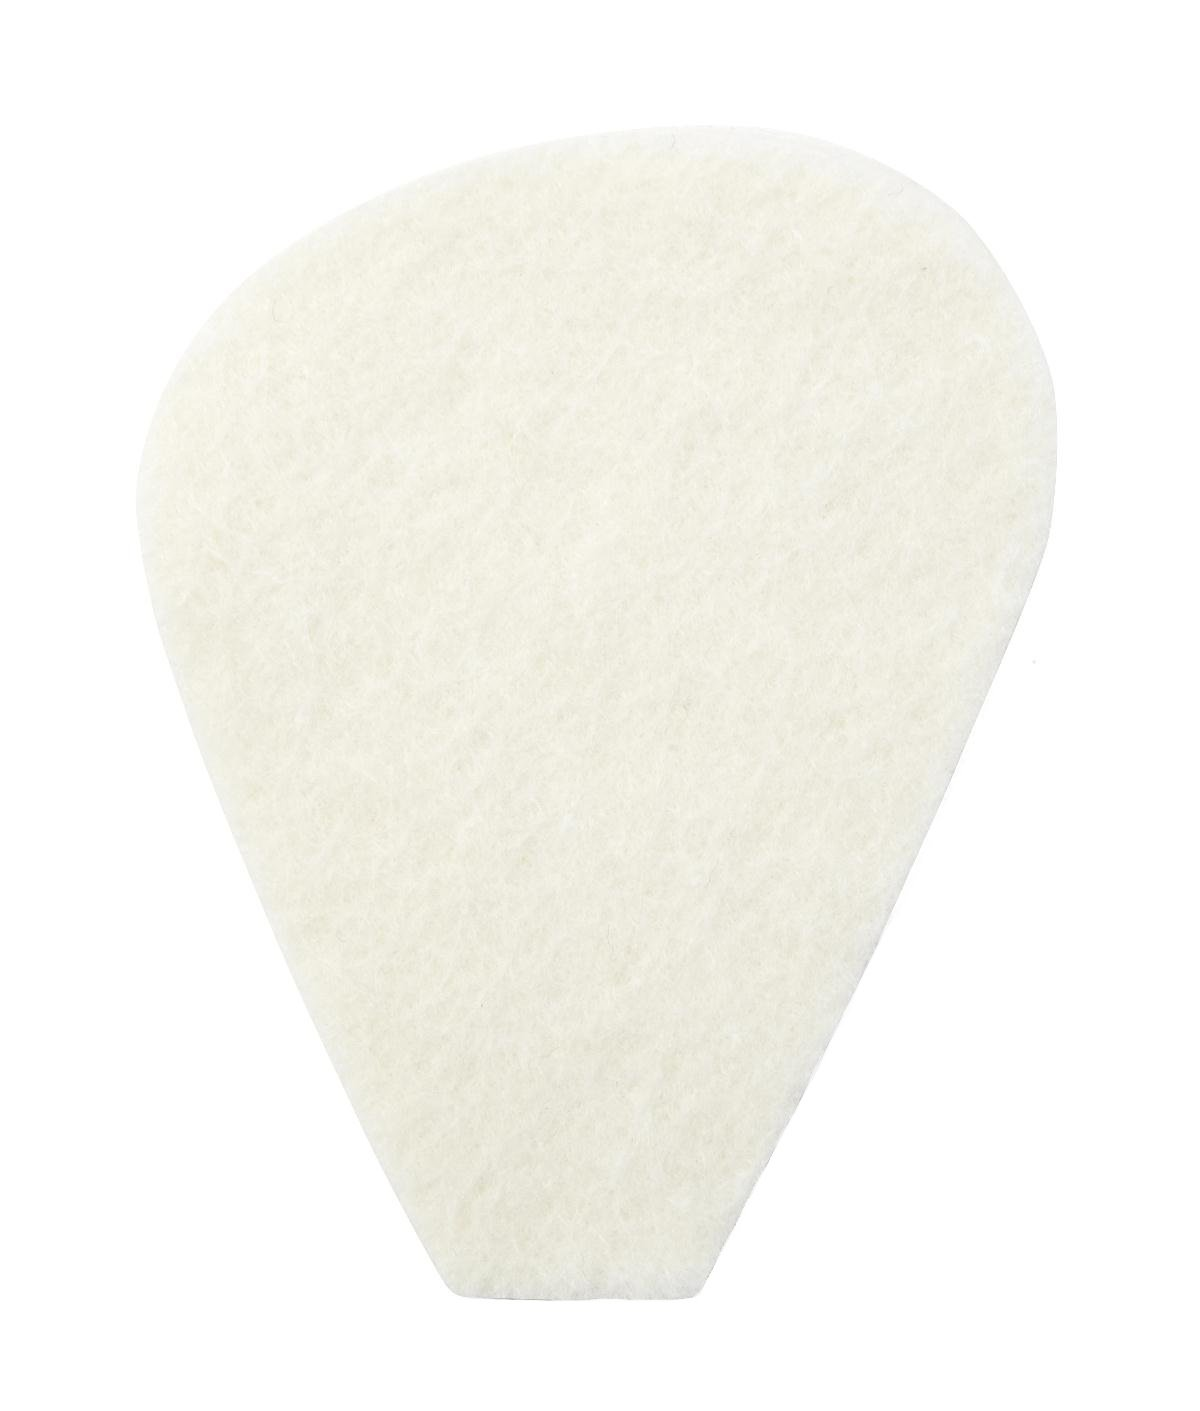 MooreBrand Adhesive Metatarsal Pedi-Pads, White Felt, 106-A, 1/4 Inch Thick - 1/Pack of 100